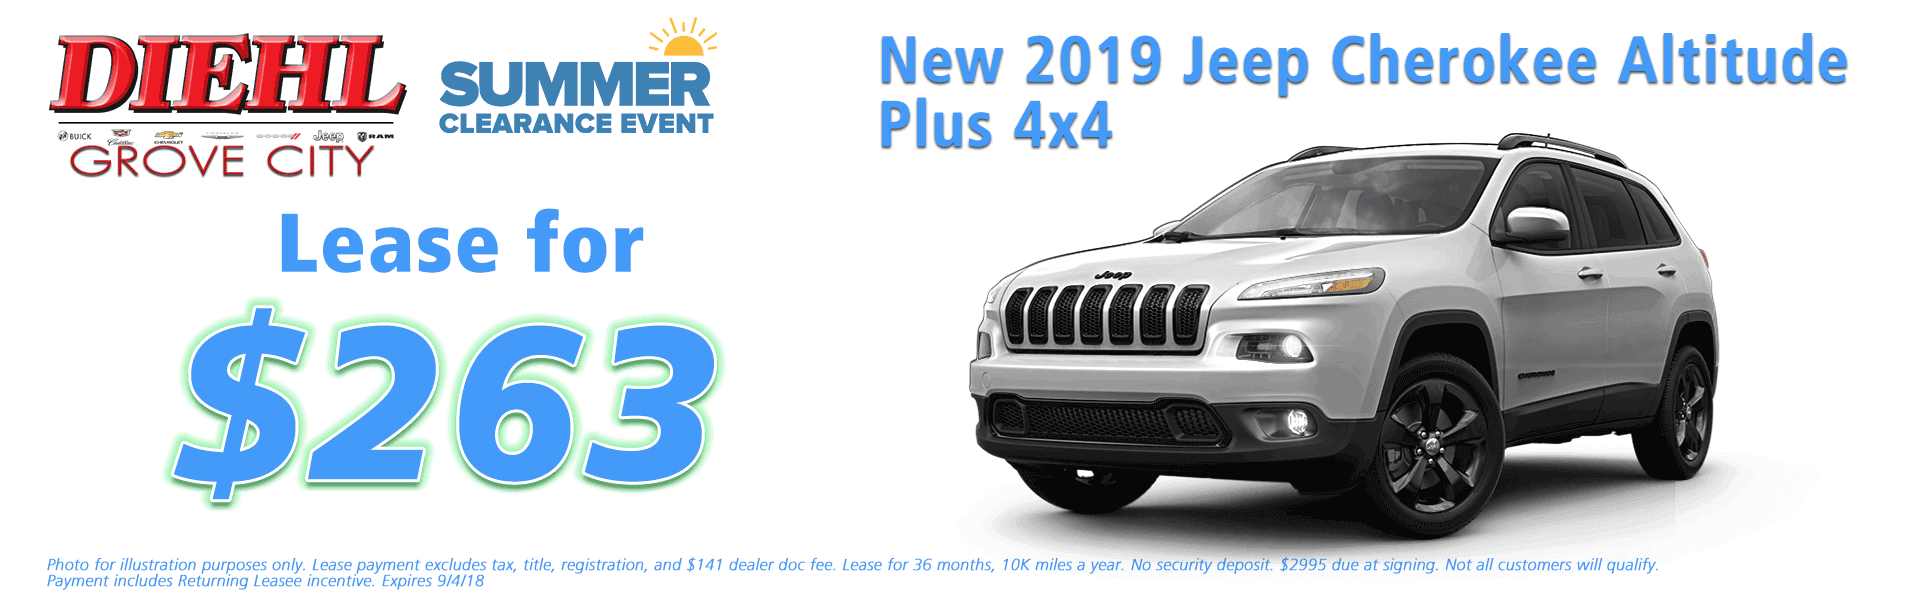 Diehl of Grove City, Grove City, PA 16127 Chrysler Jeep Dodge Ram Chevrolet Buick Cadillac NEW 2019 JEEP CHEROKEE LATITUDE PLUS 4X4